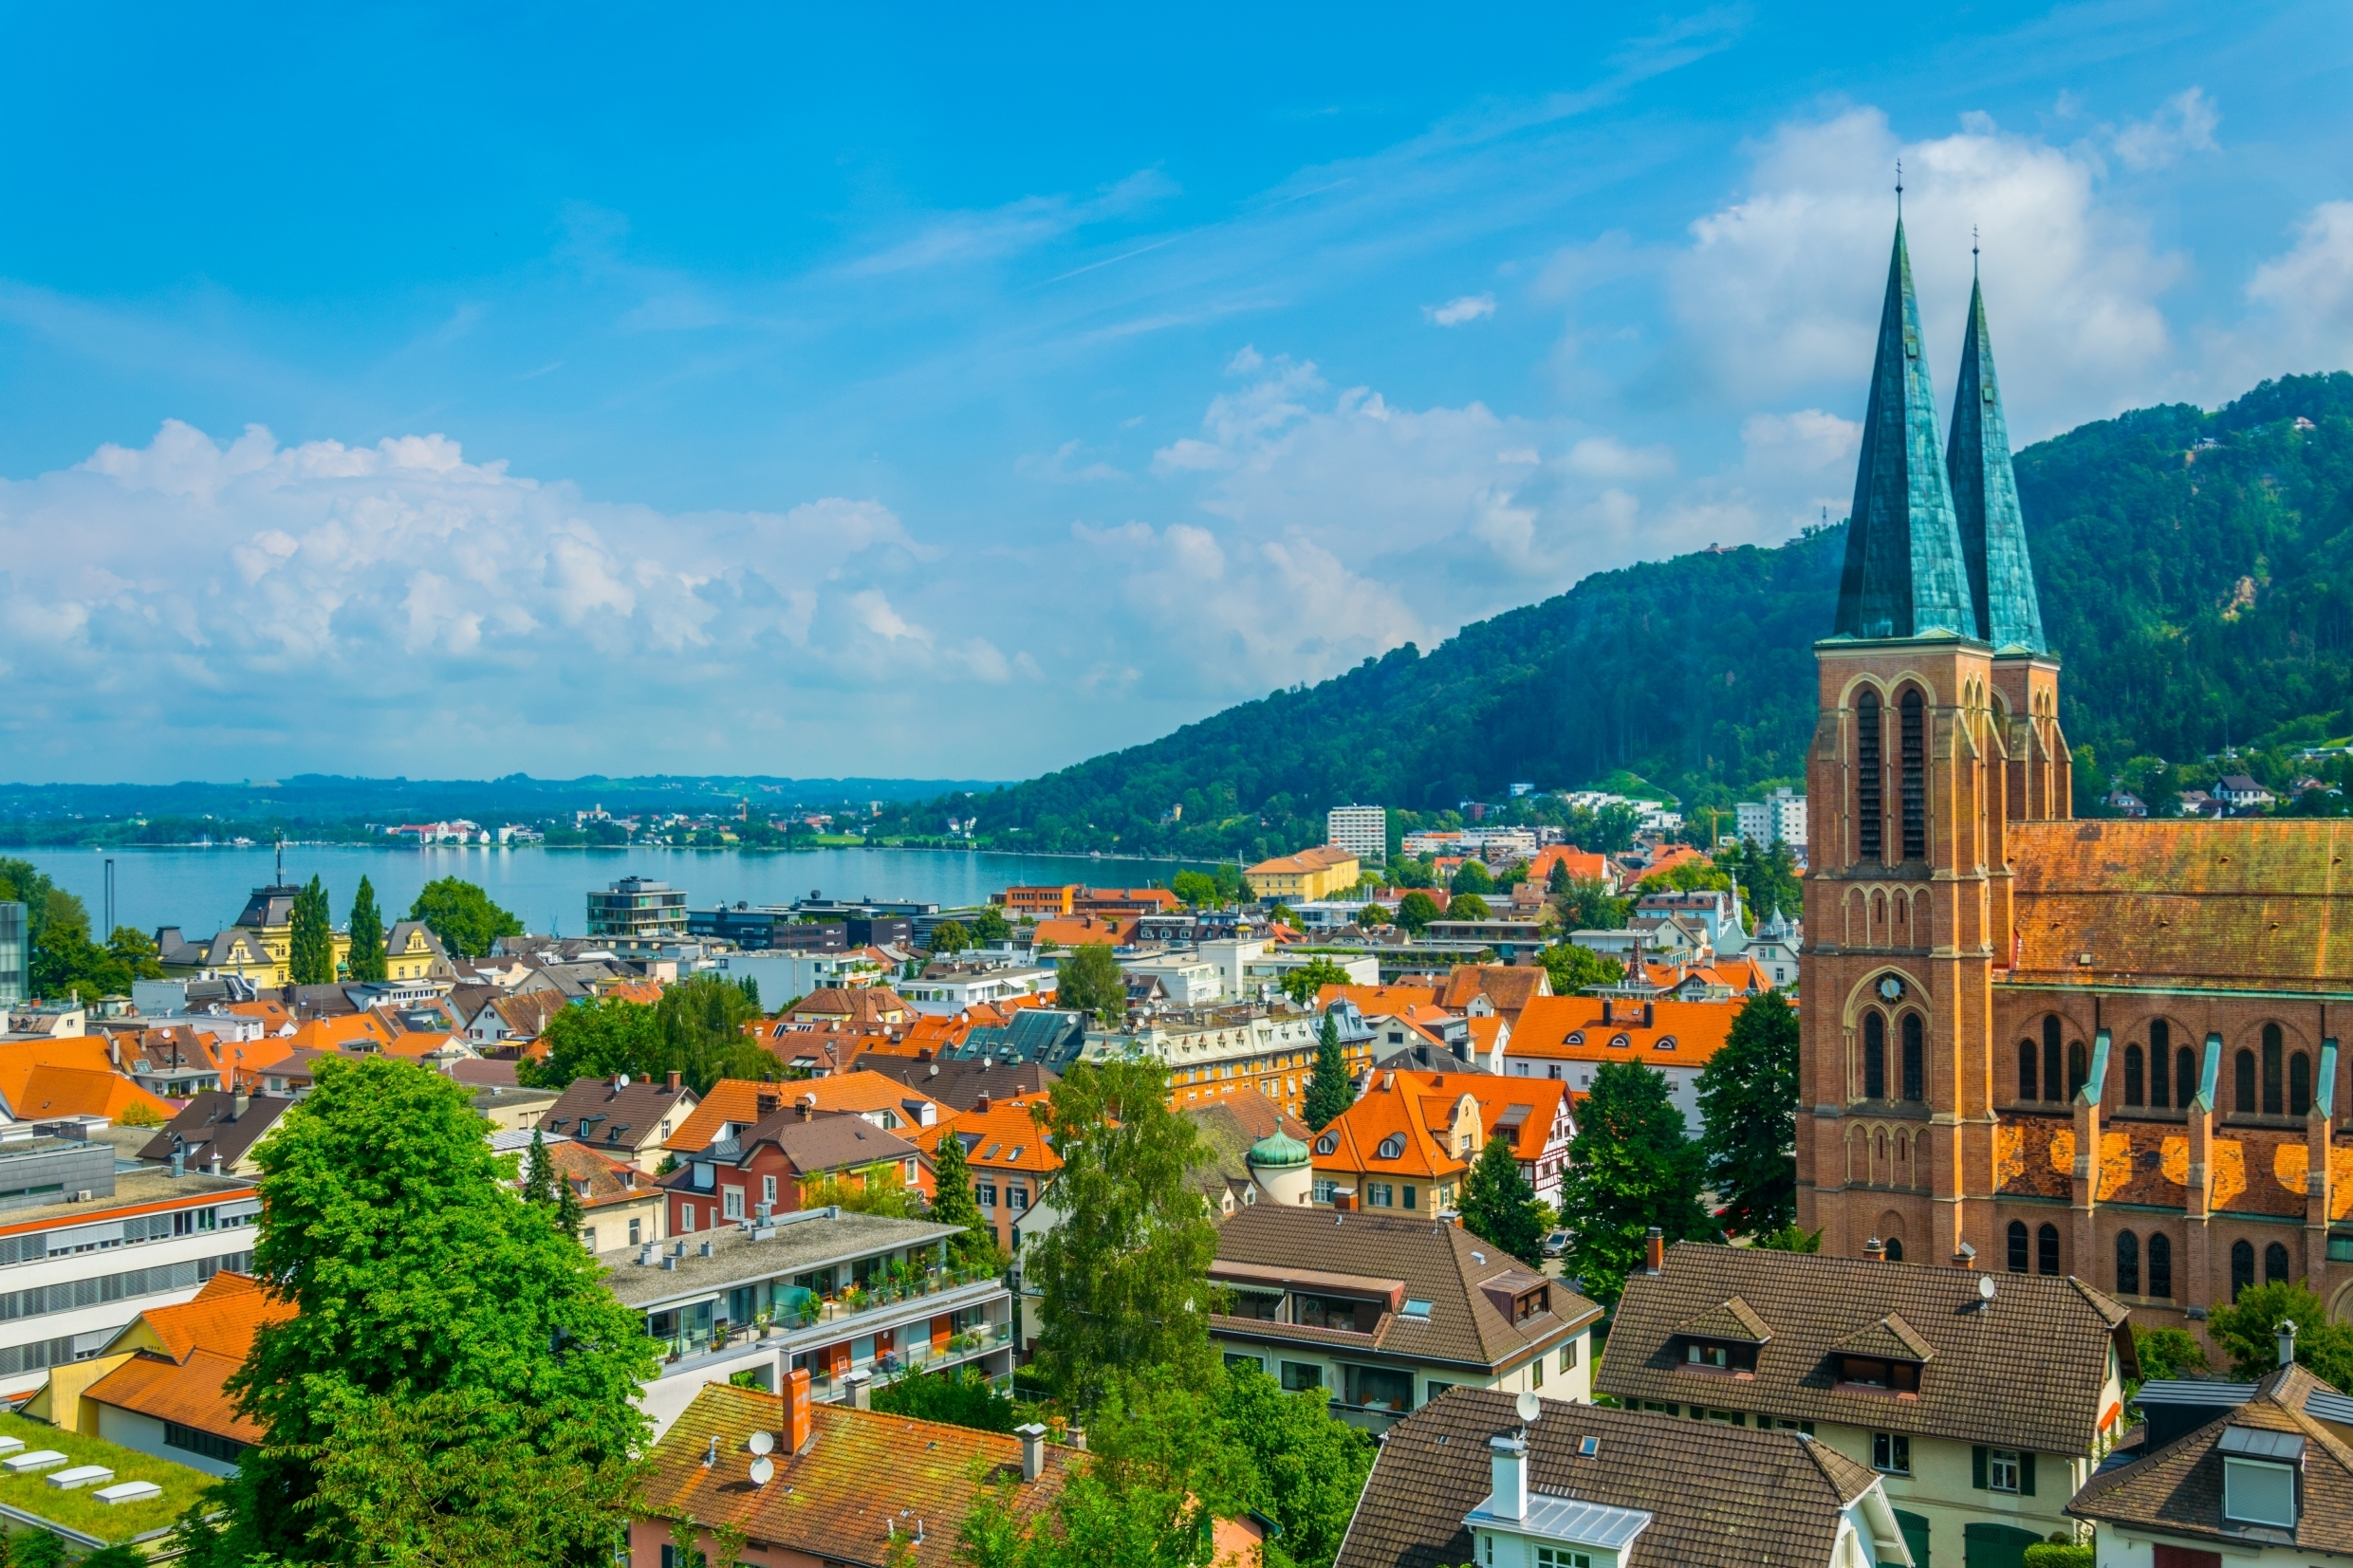 Photo of the small Austrian town Bregenz. The very unique double steeple church is shown on the right with many buildings and homes scattered on the left. Light blue water is far in the background with a green mountain on the right.